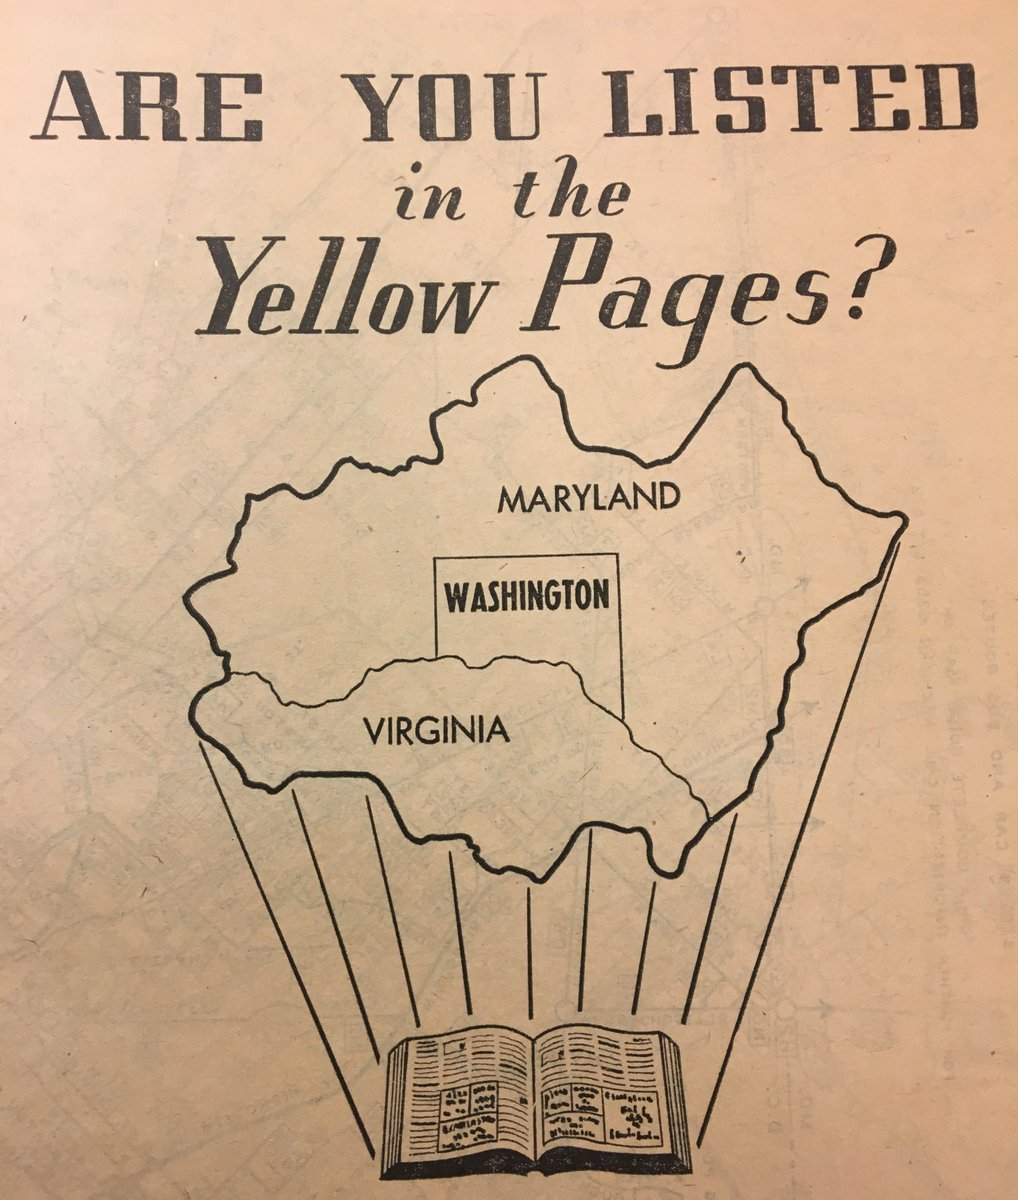 washington d c area yellow pages